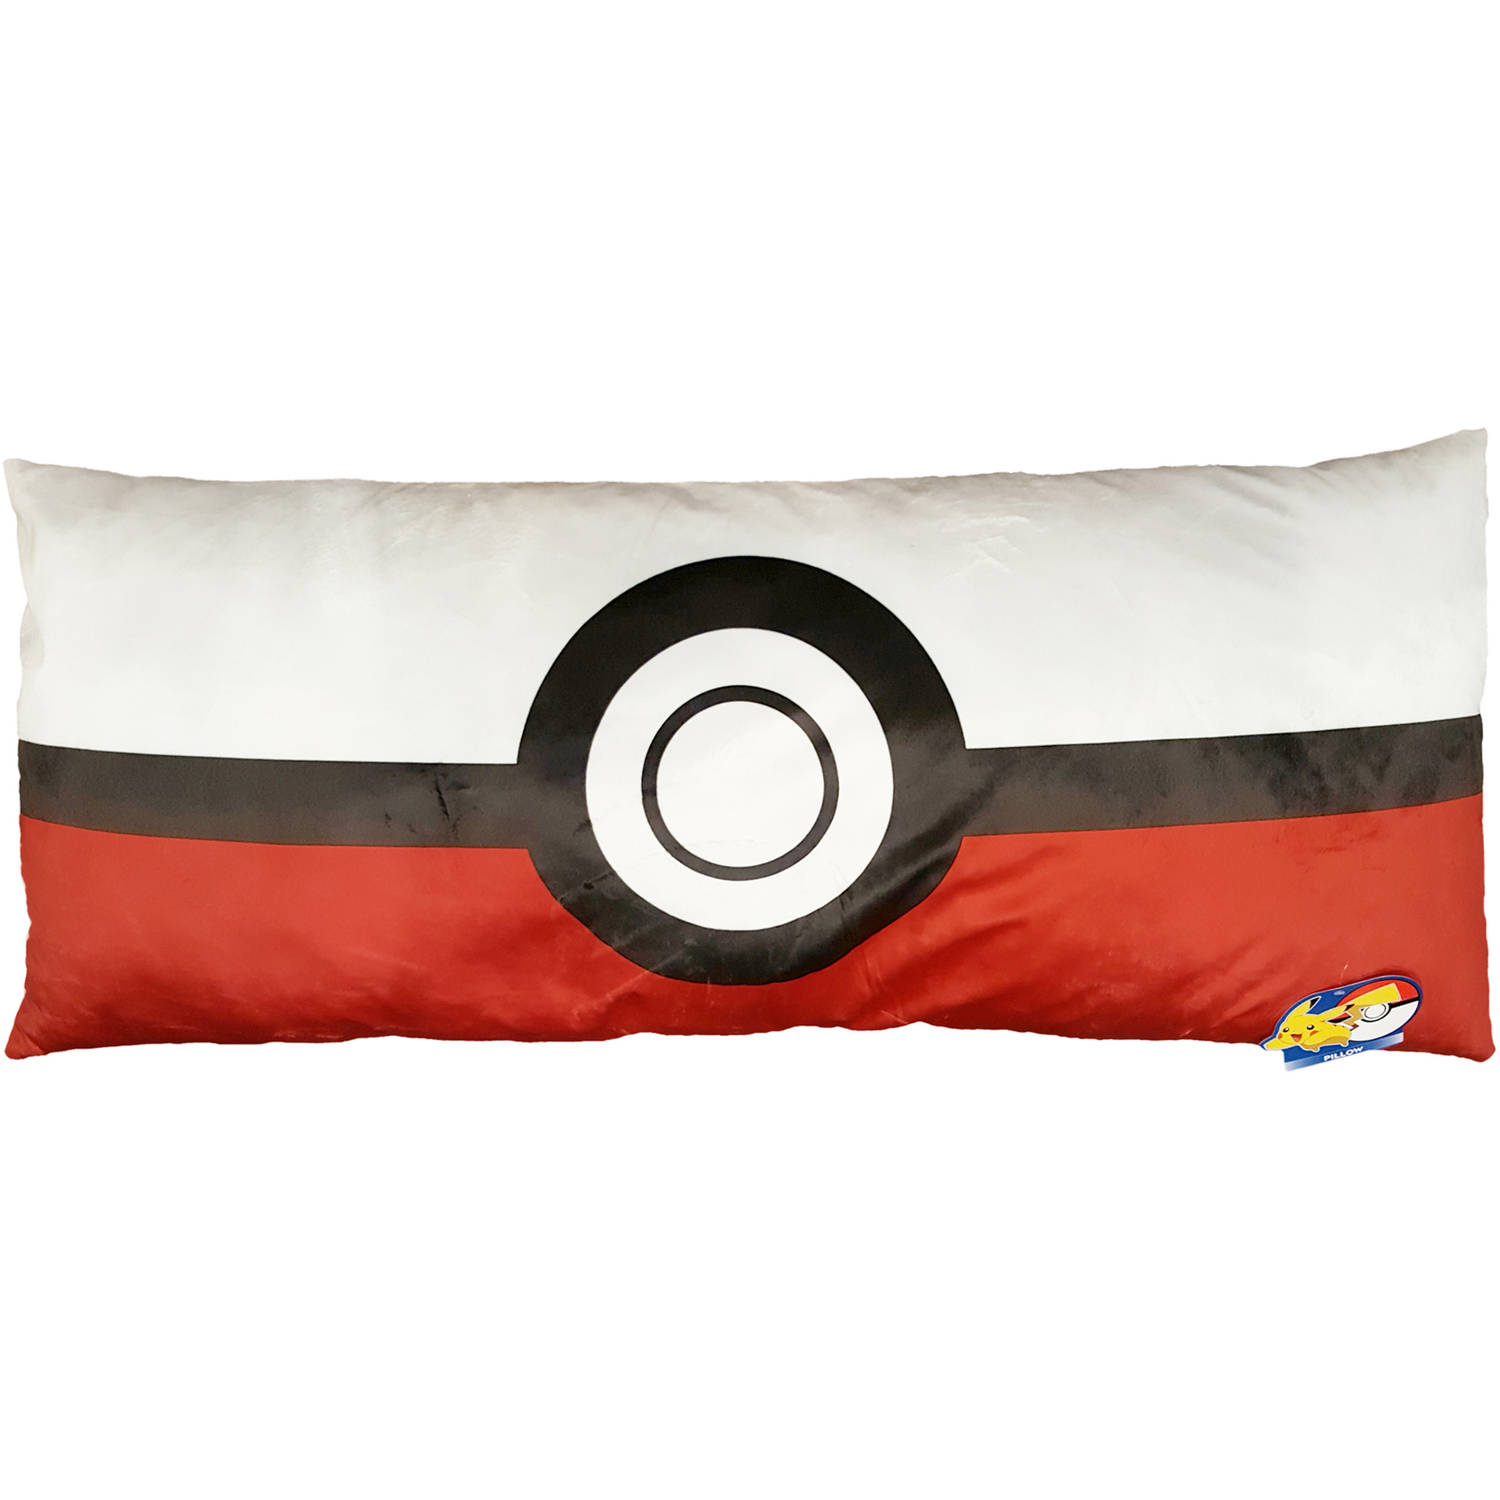 "Pokémon Poke-Ball 24"" x 48"" Body Pillow, 1 Each"